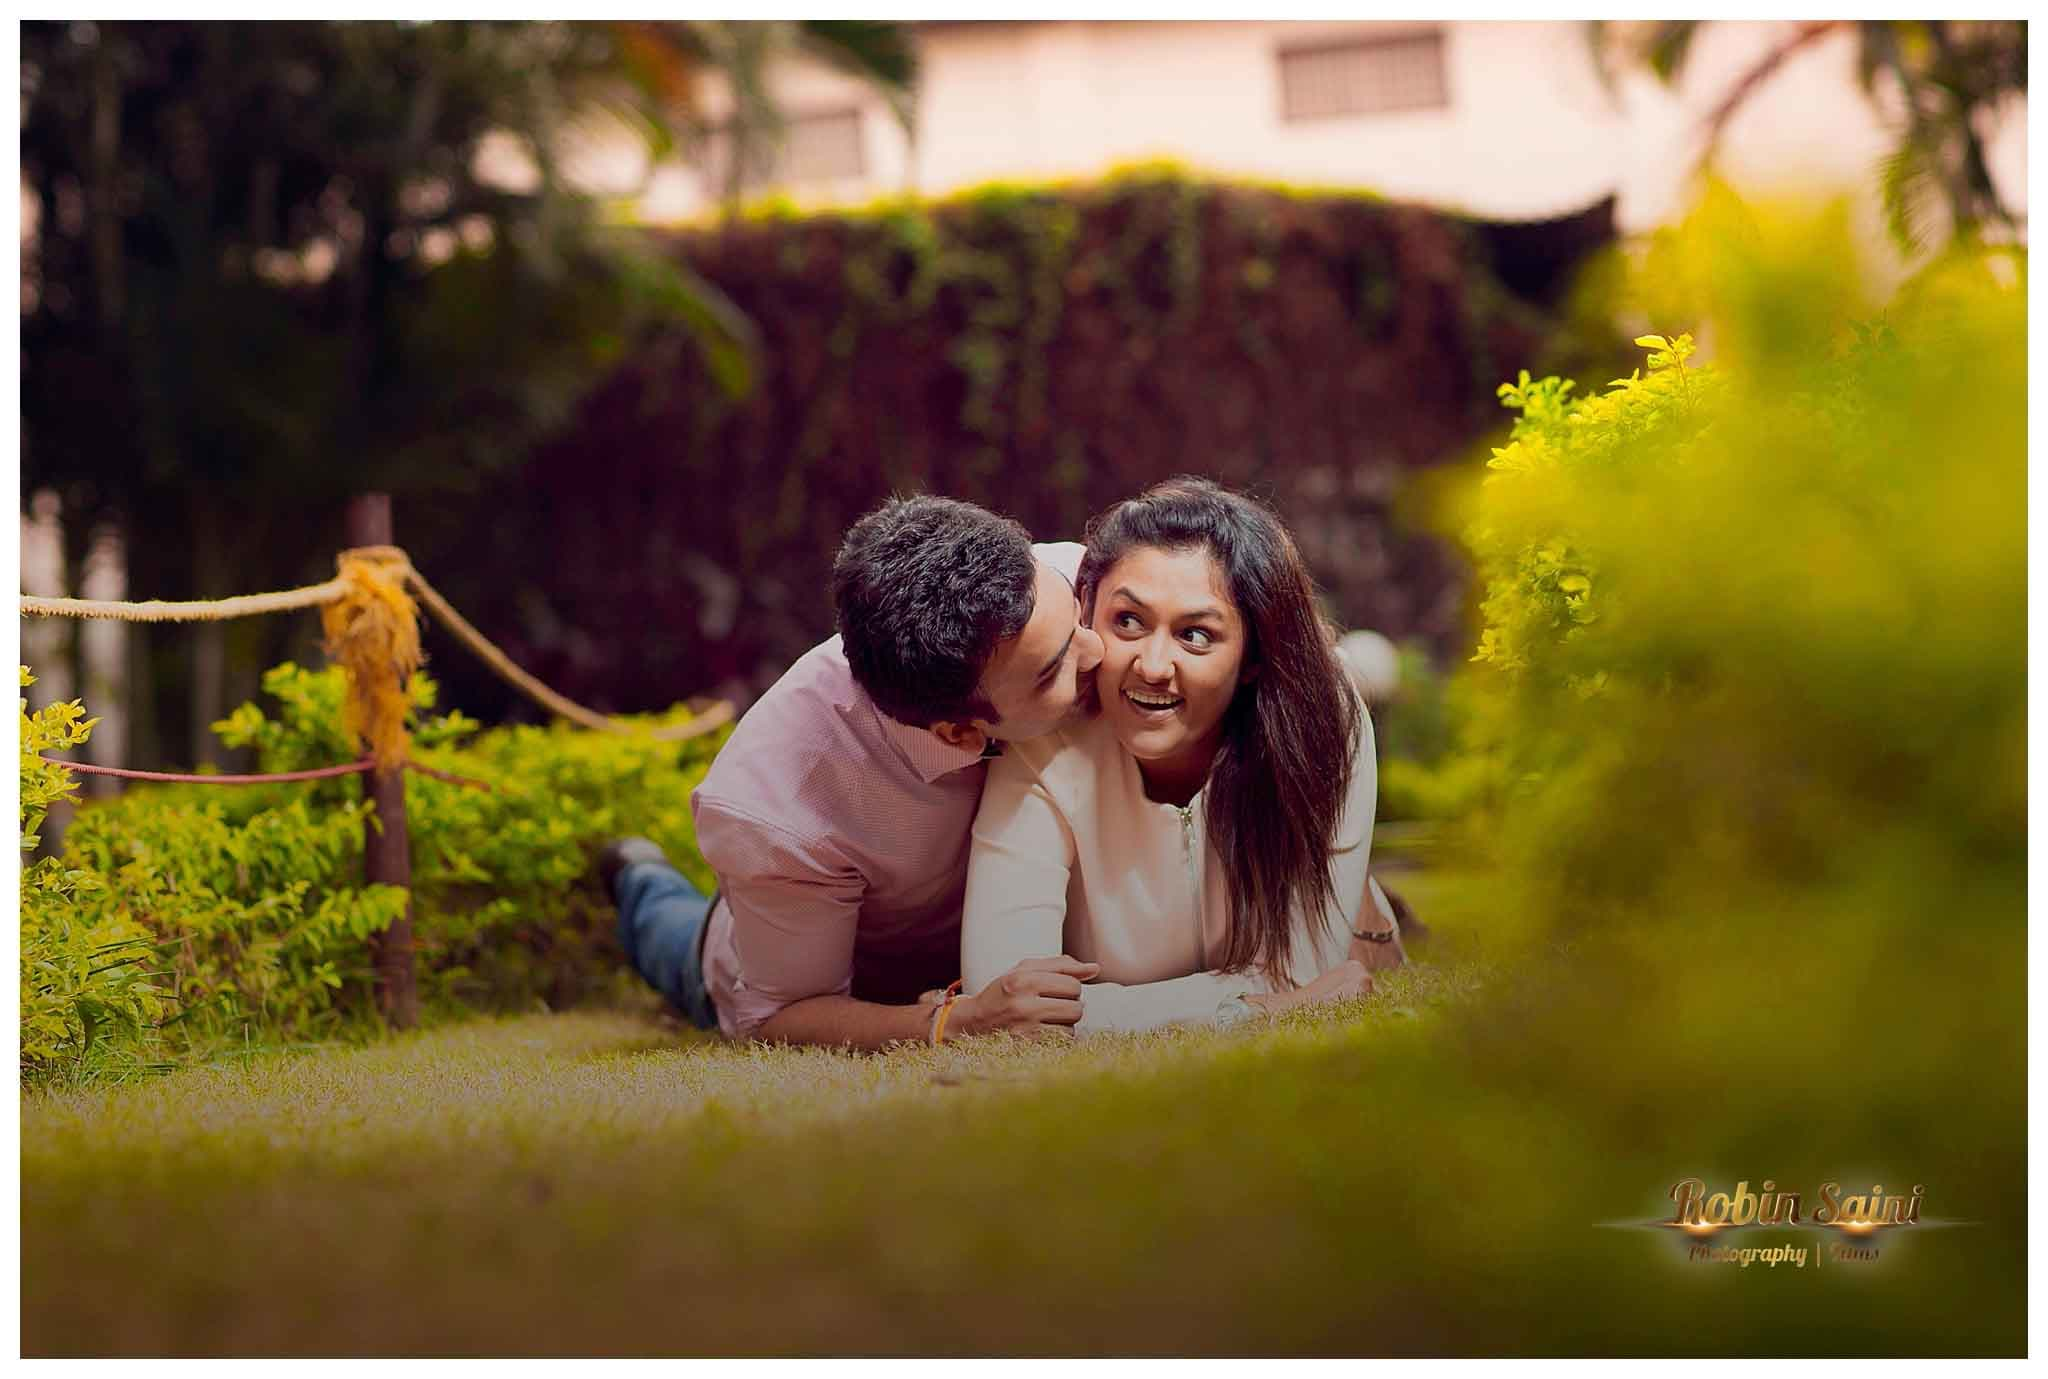 pre wedding photo shoot:robin saini photography